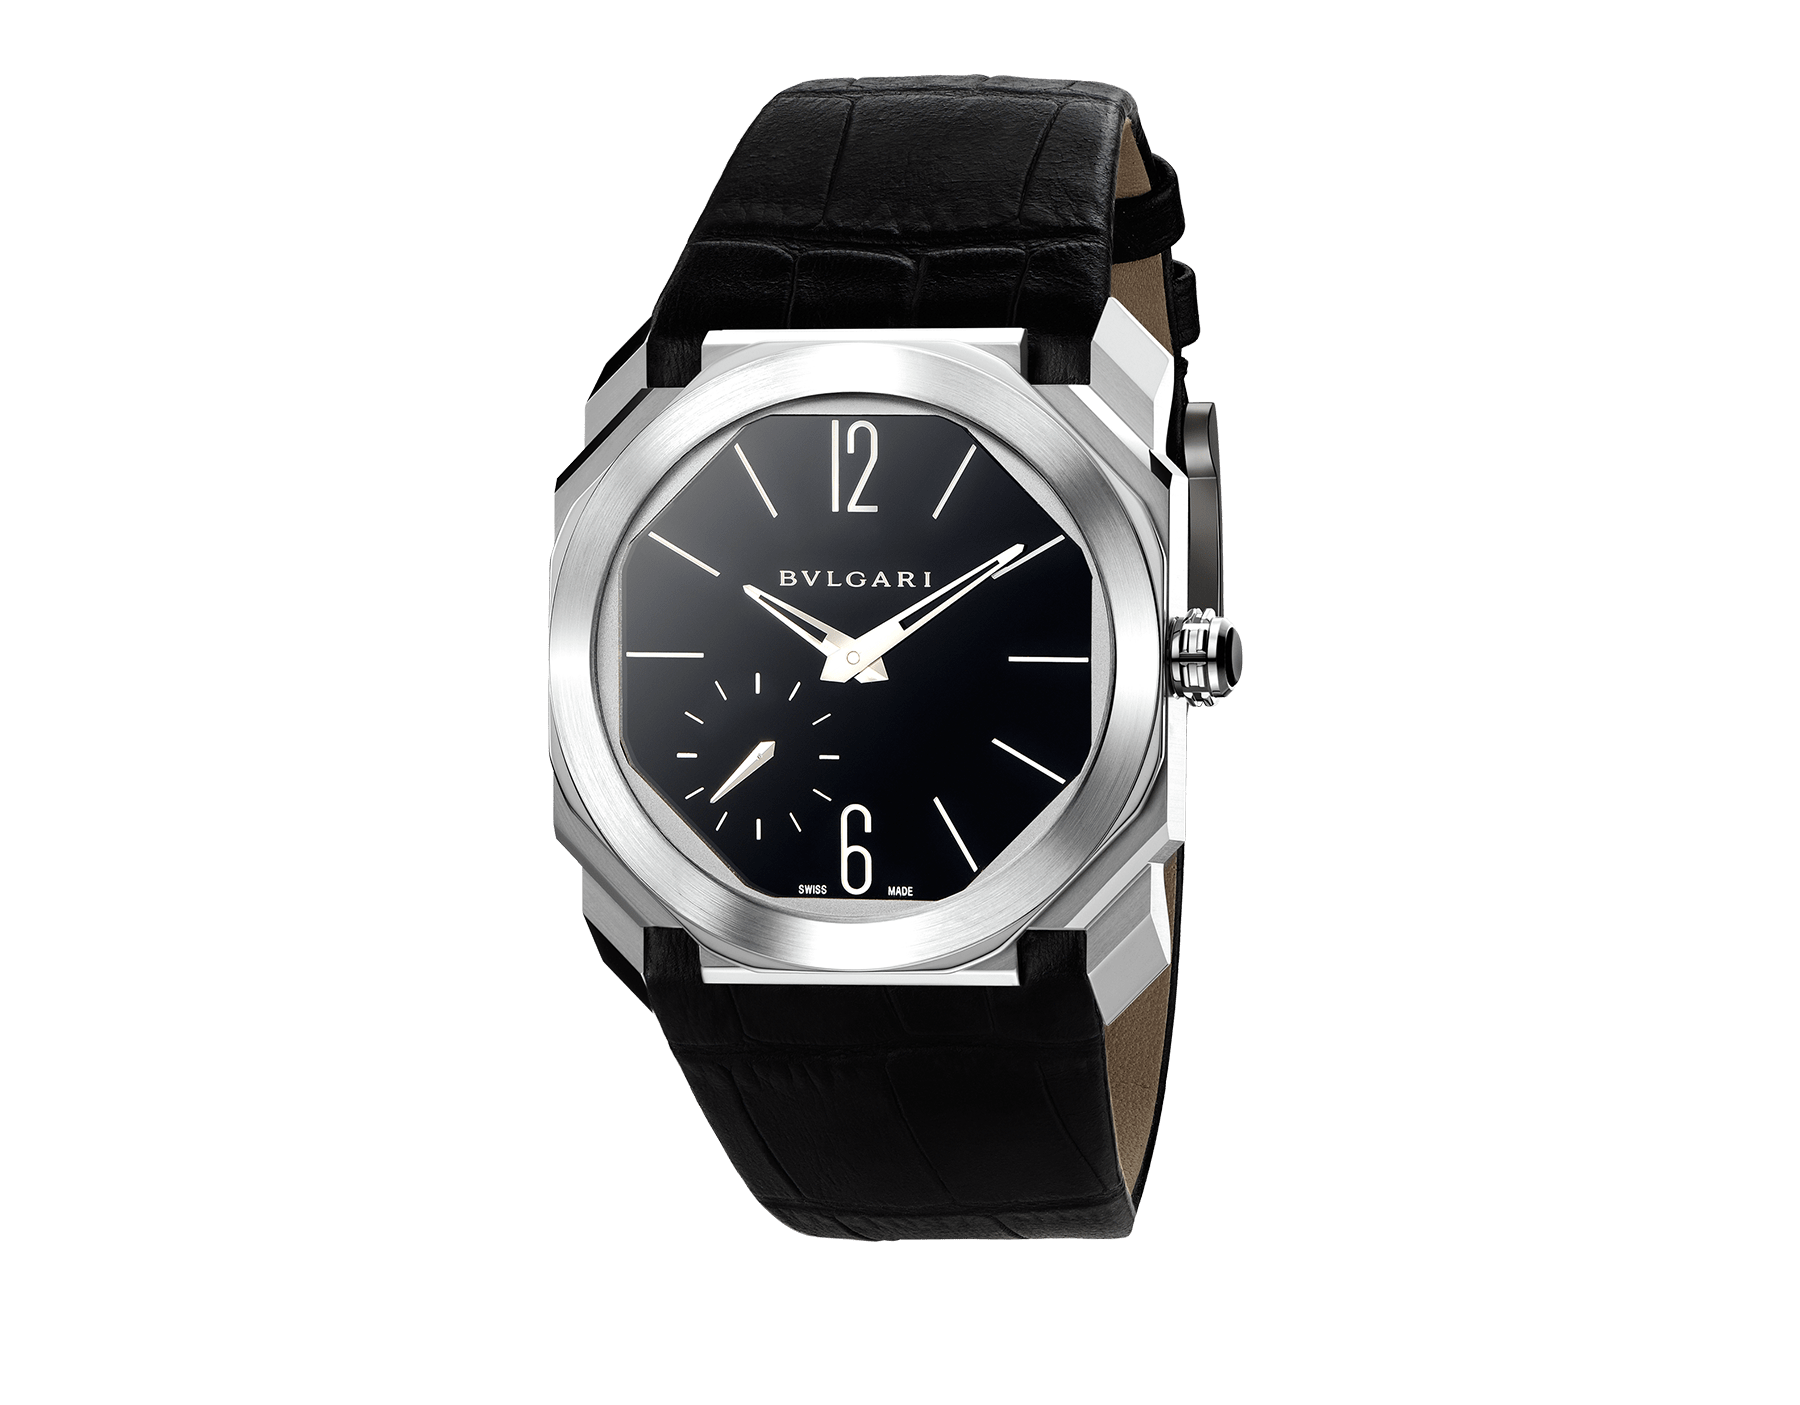 Octo Finissimo watch with extra thin mechanical manufacture movement, manual winding, small seconds and back-side power reserve, platinum case, black lacquered dial and black alligator bracelet. 102028 image 1